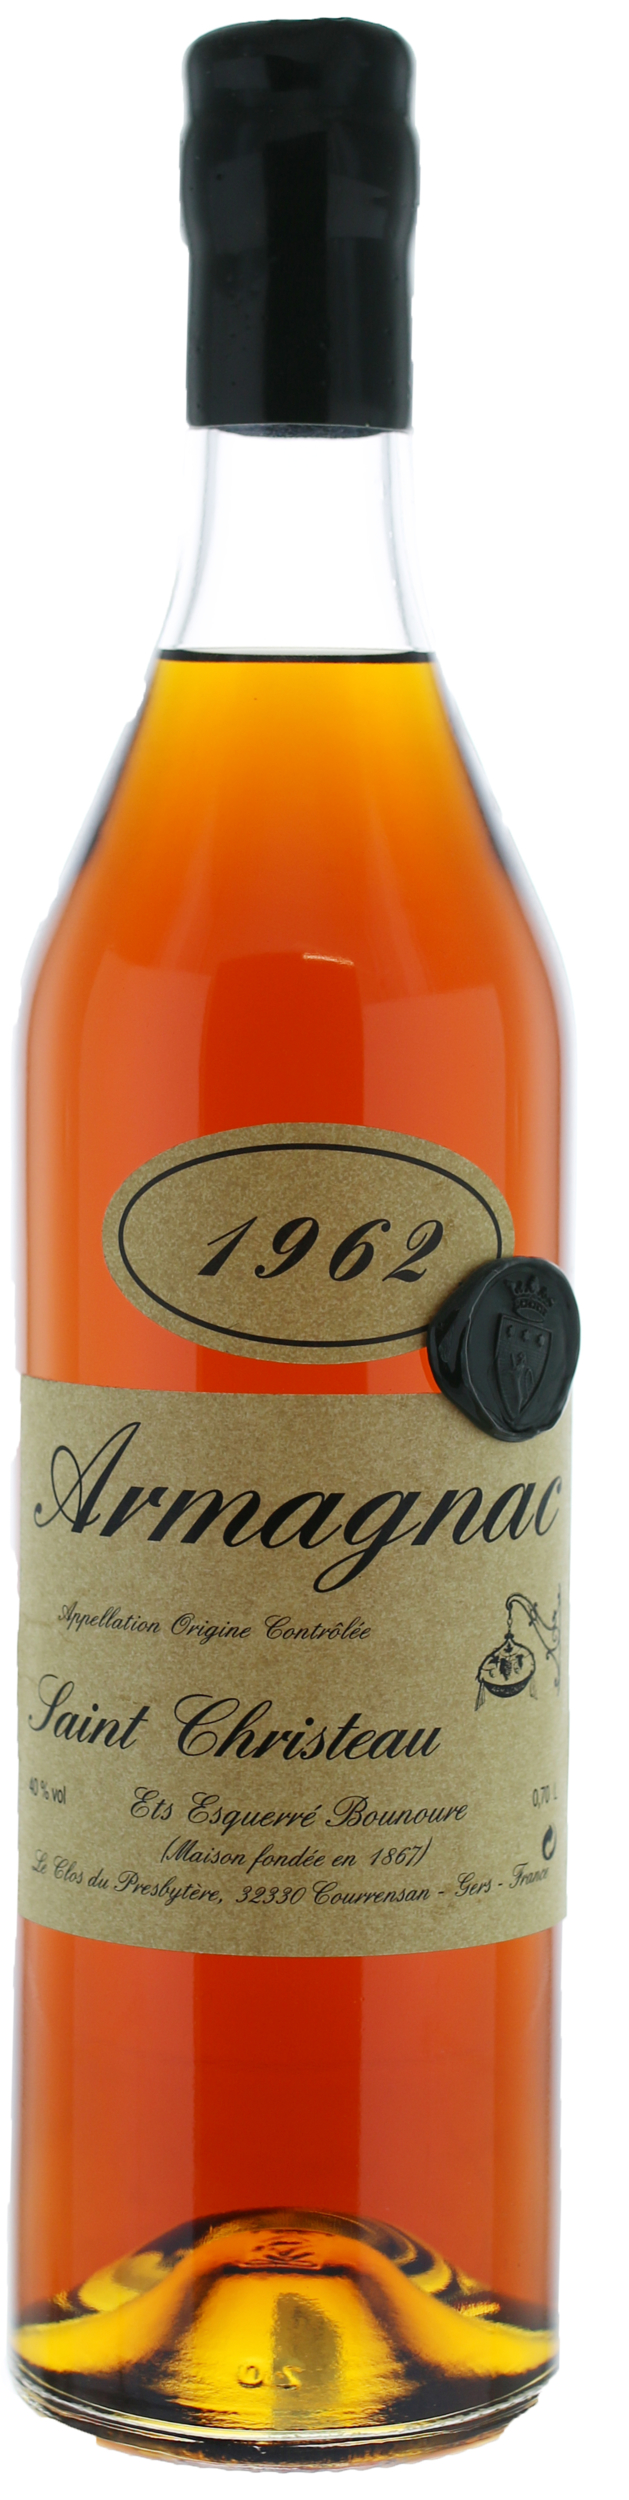 ARMAGNAC - 1962 - Saint-Christeau - 40° - G. Miclo